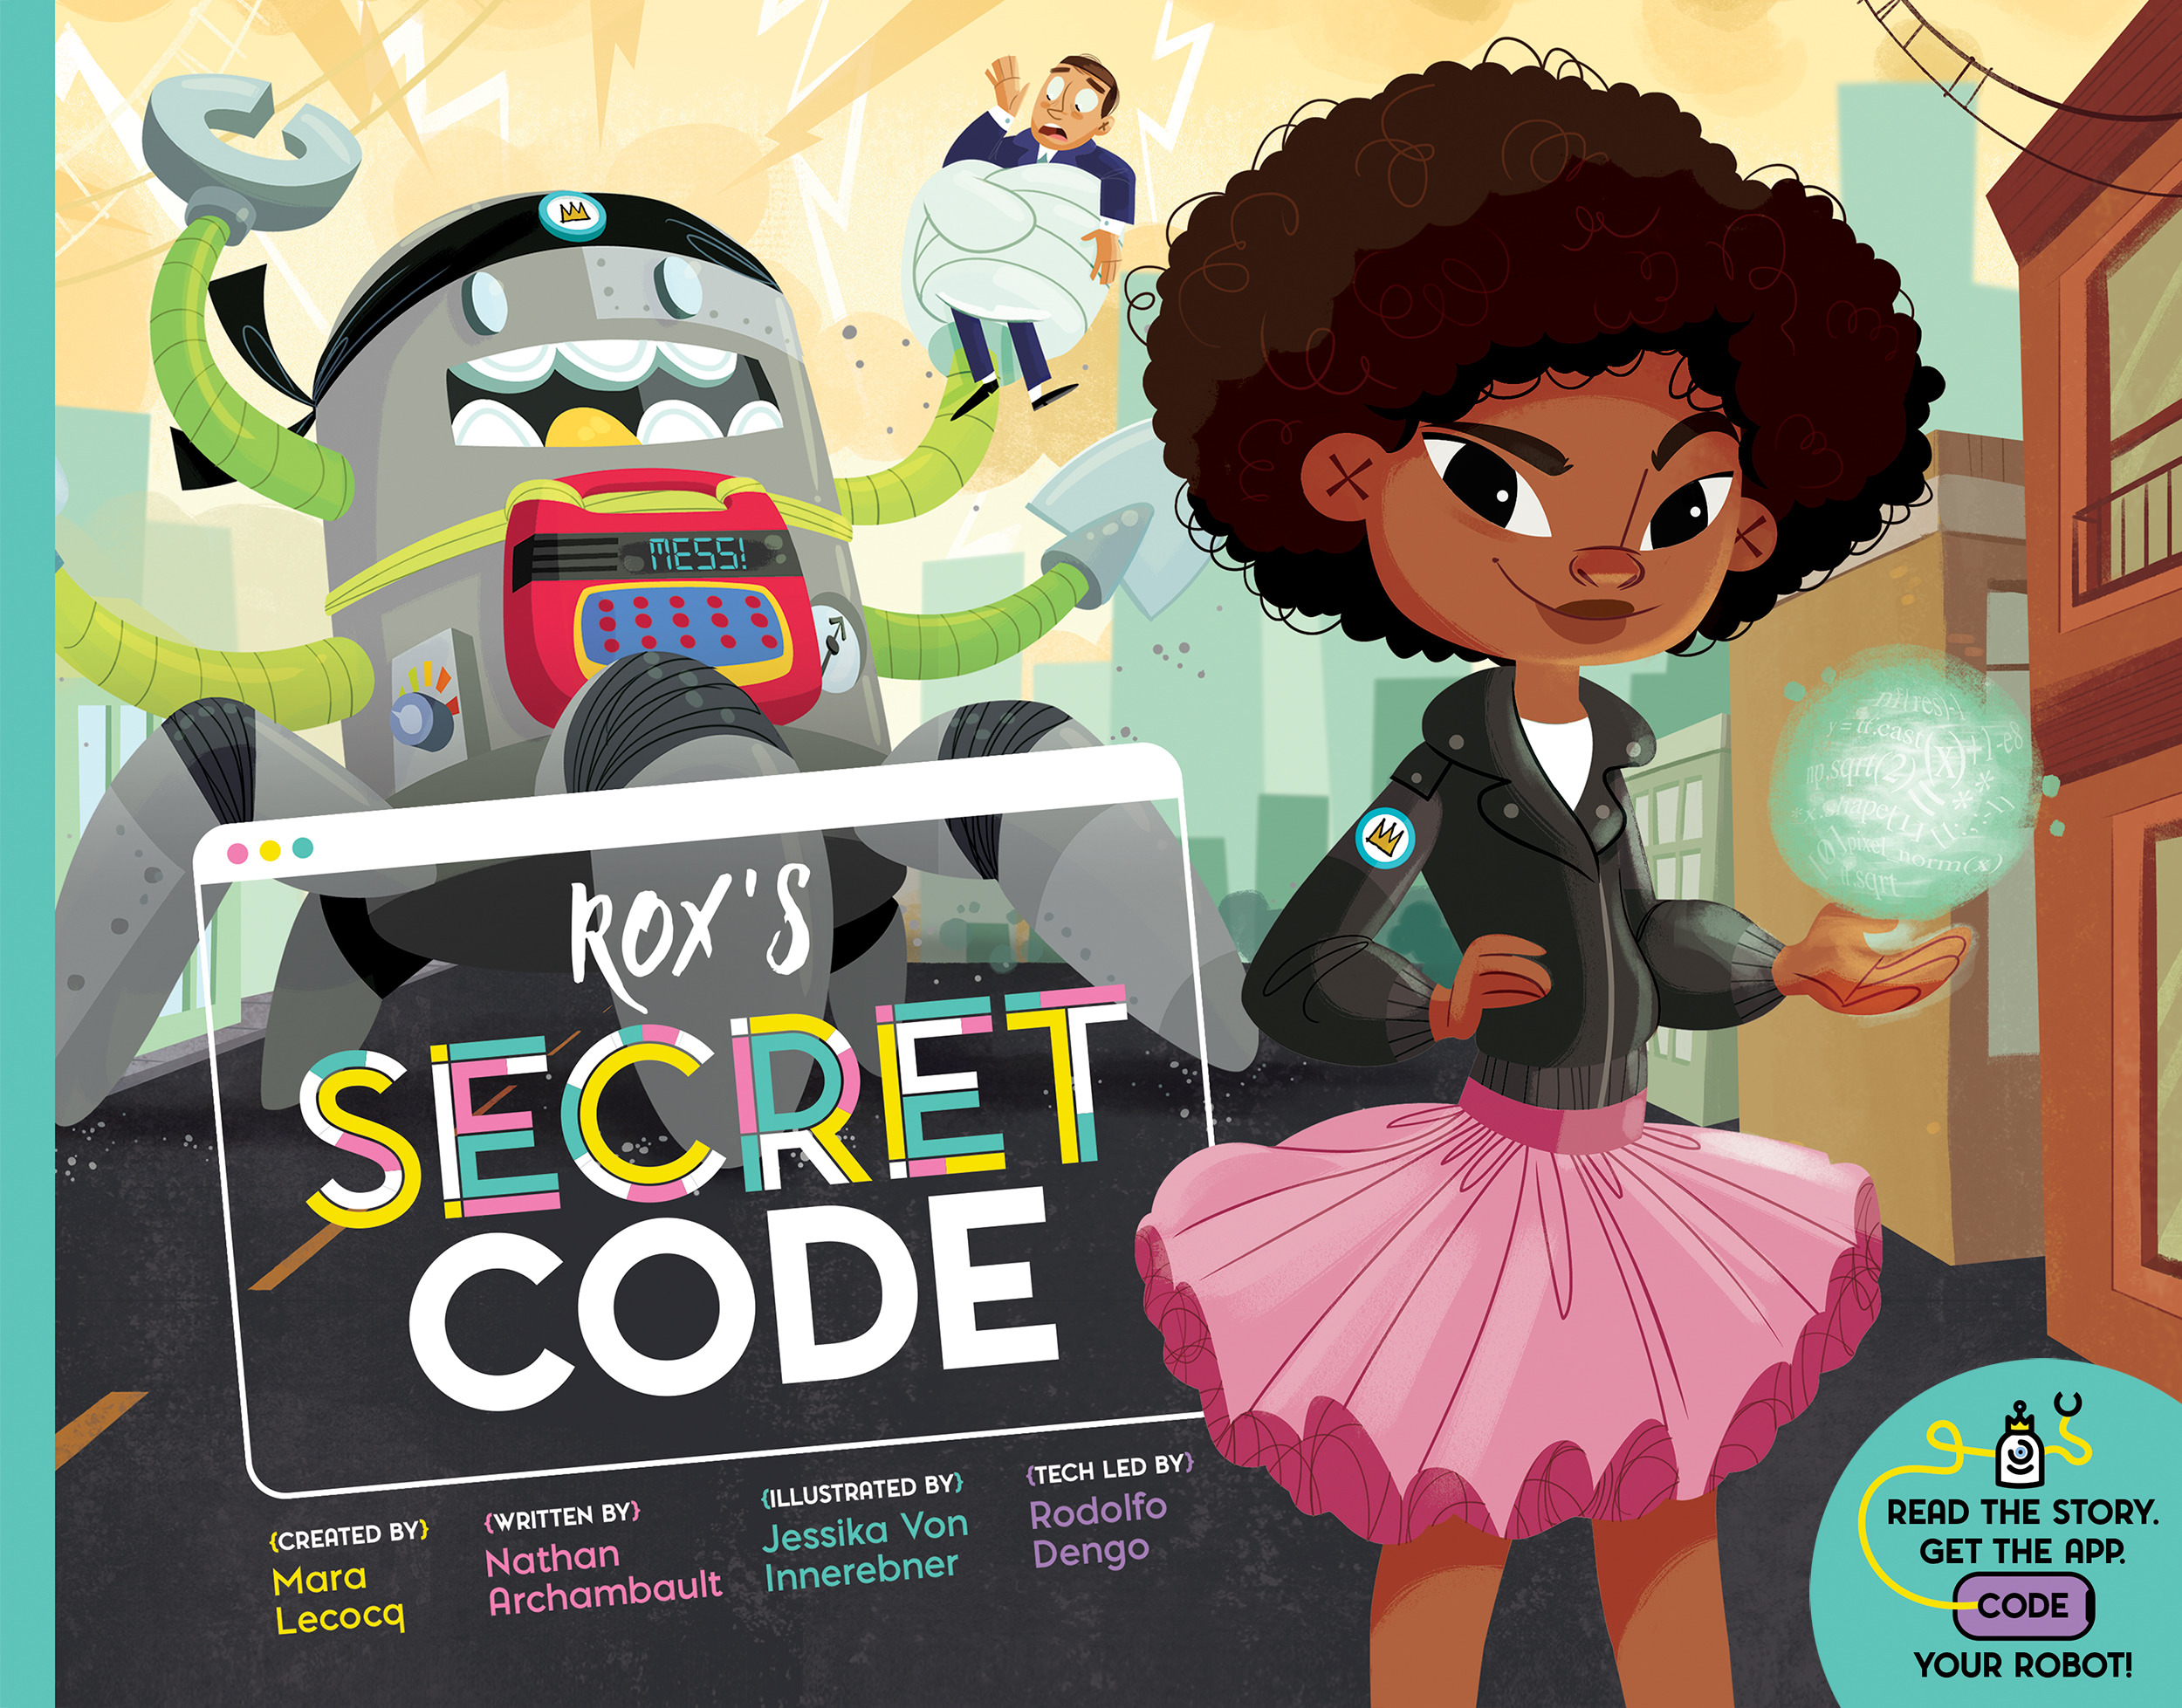 Book Launch: Rox's Secret Code by Mara Lecocq and Nathan Archambault